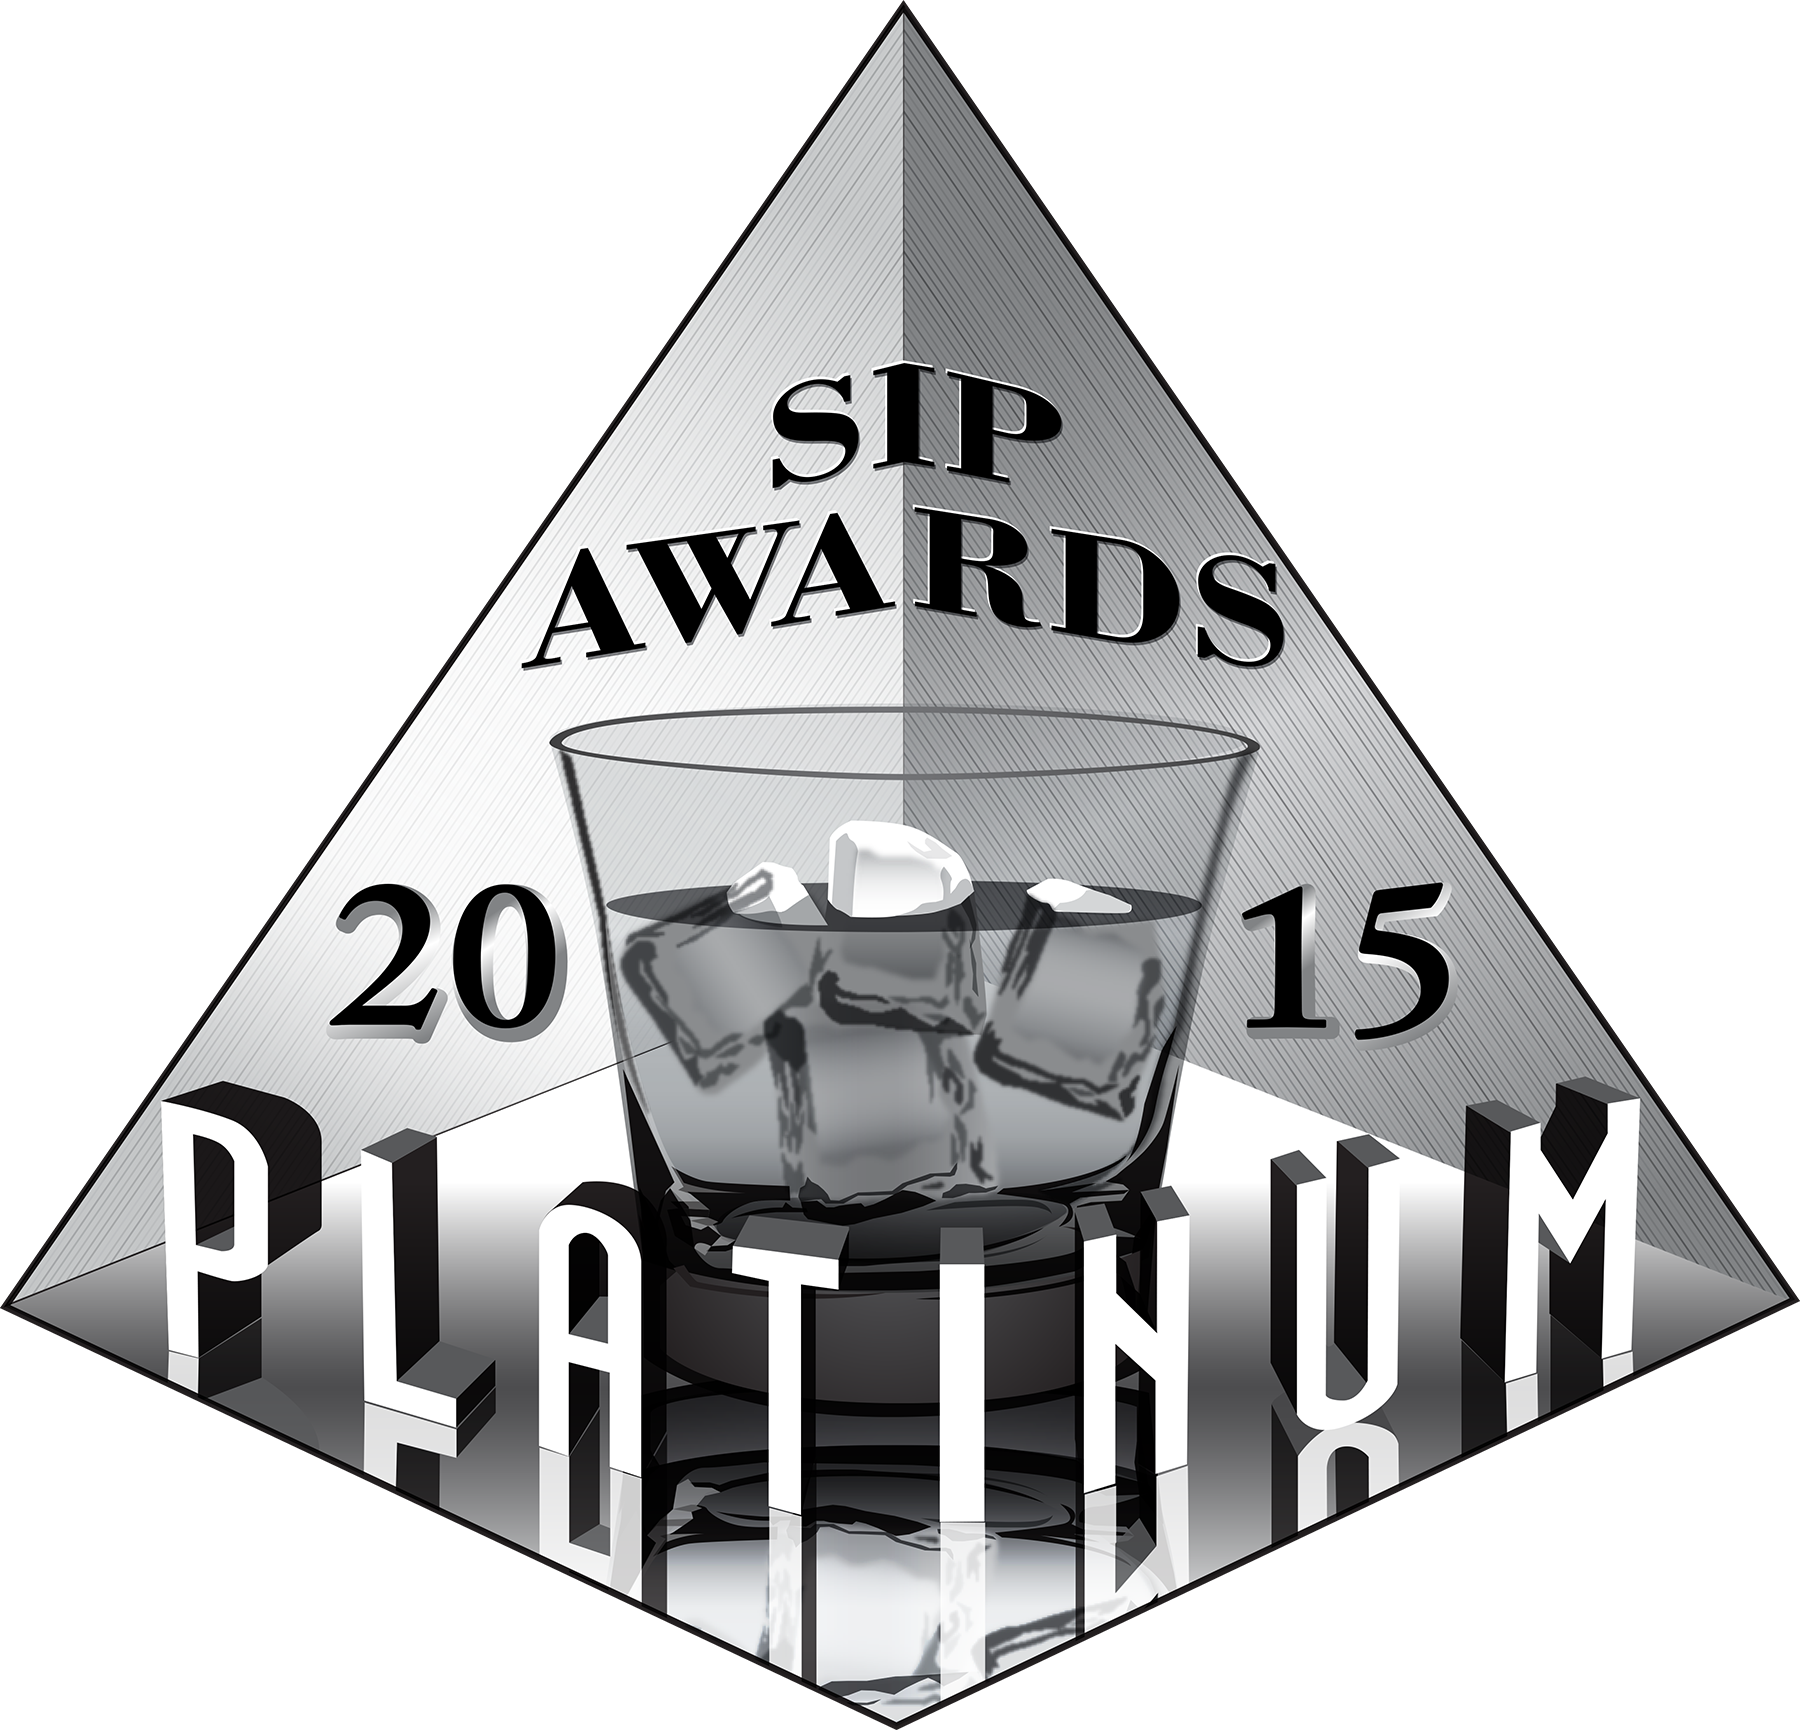 SIP Awards - Platinum